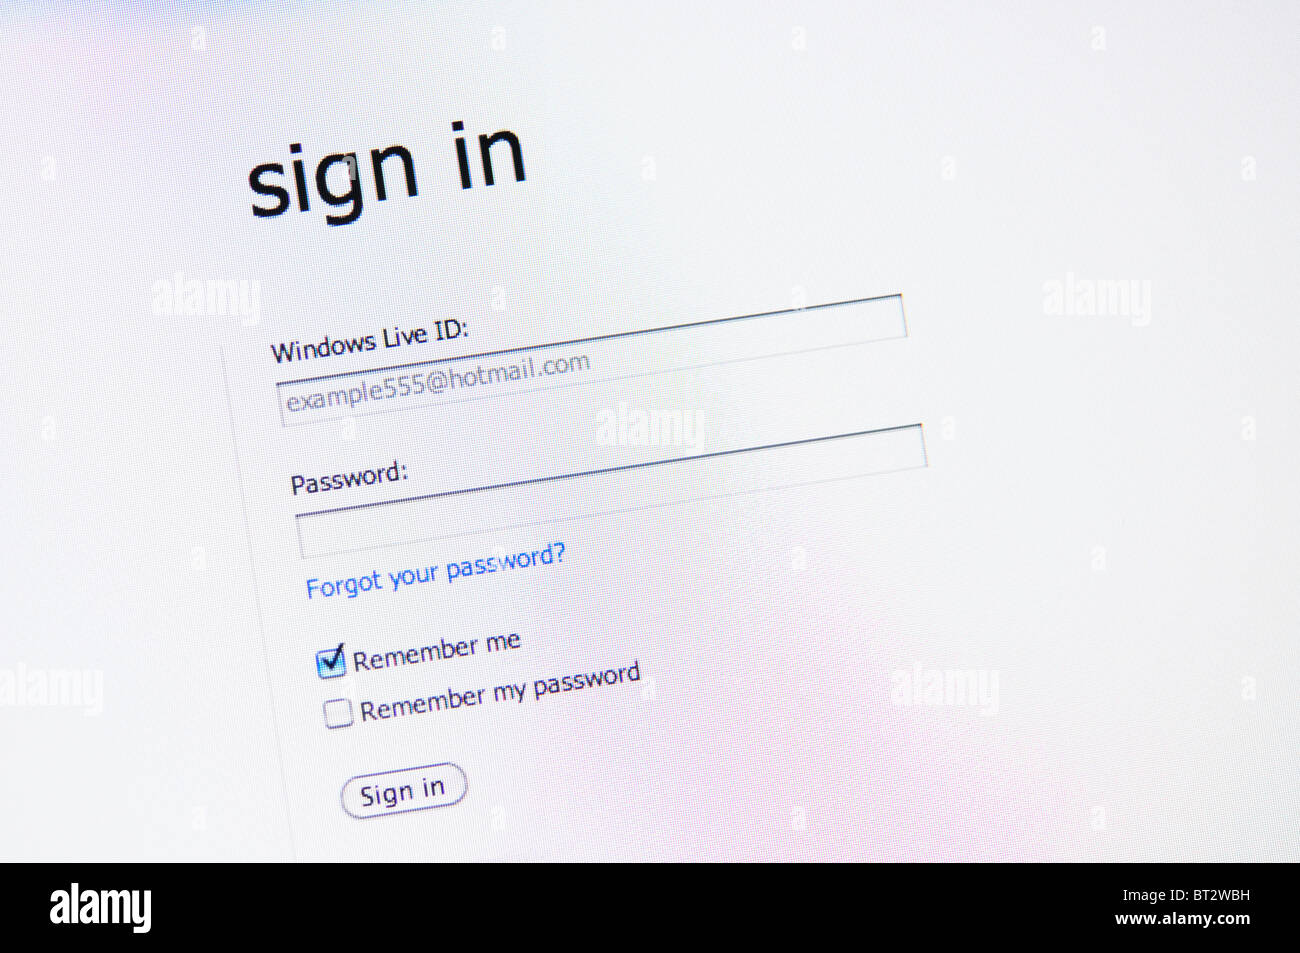 Sign In / Log in page - Stock Image